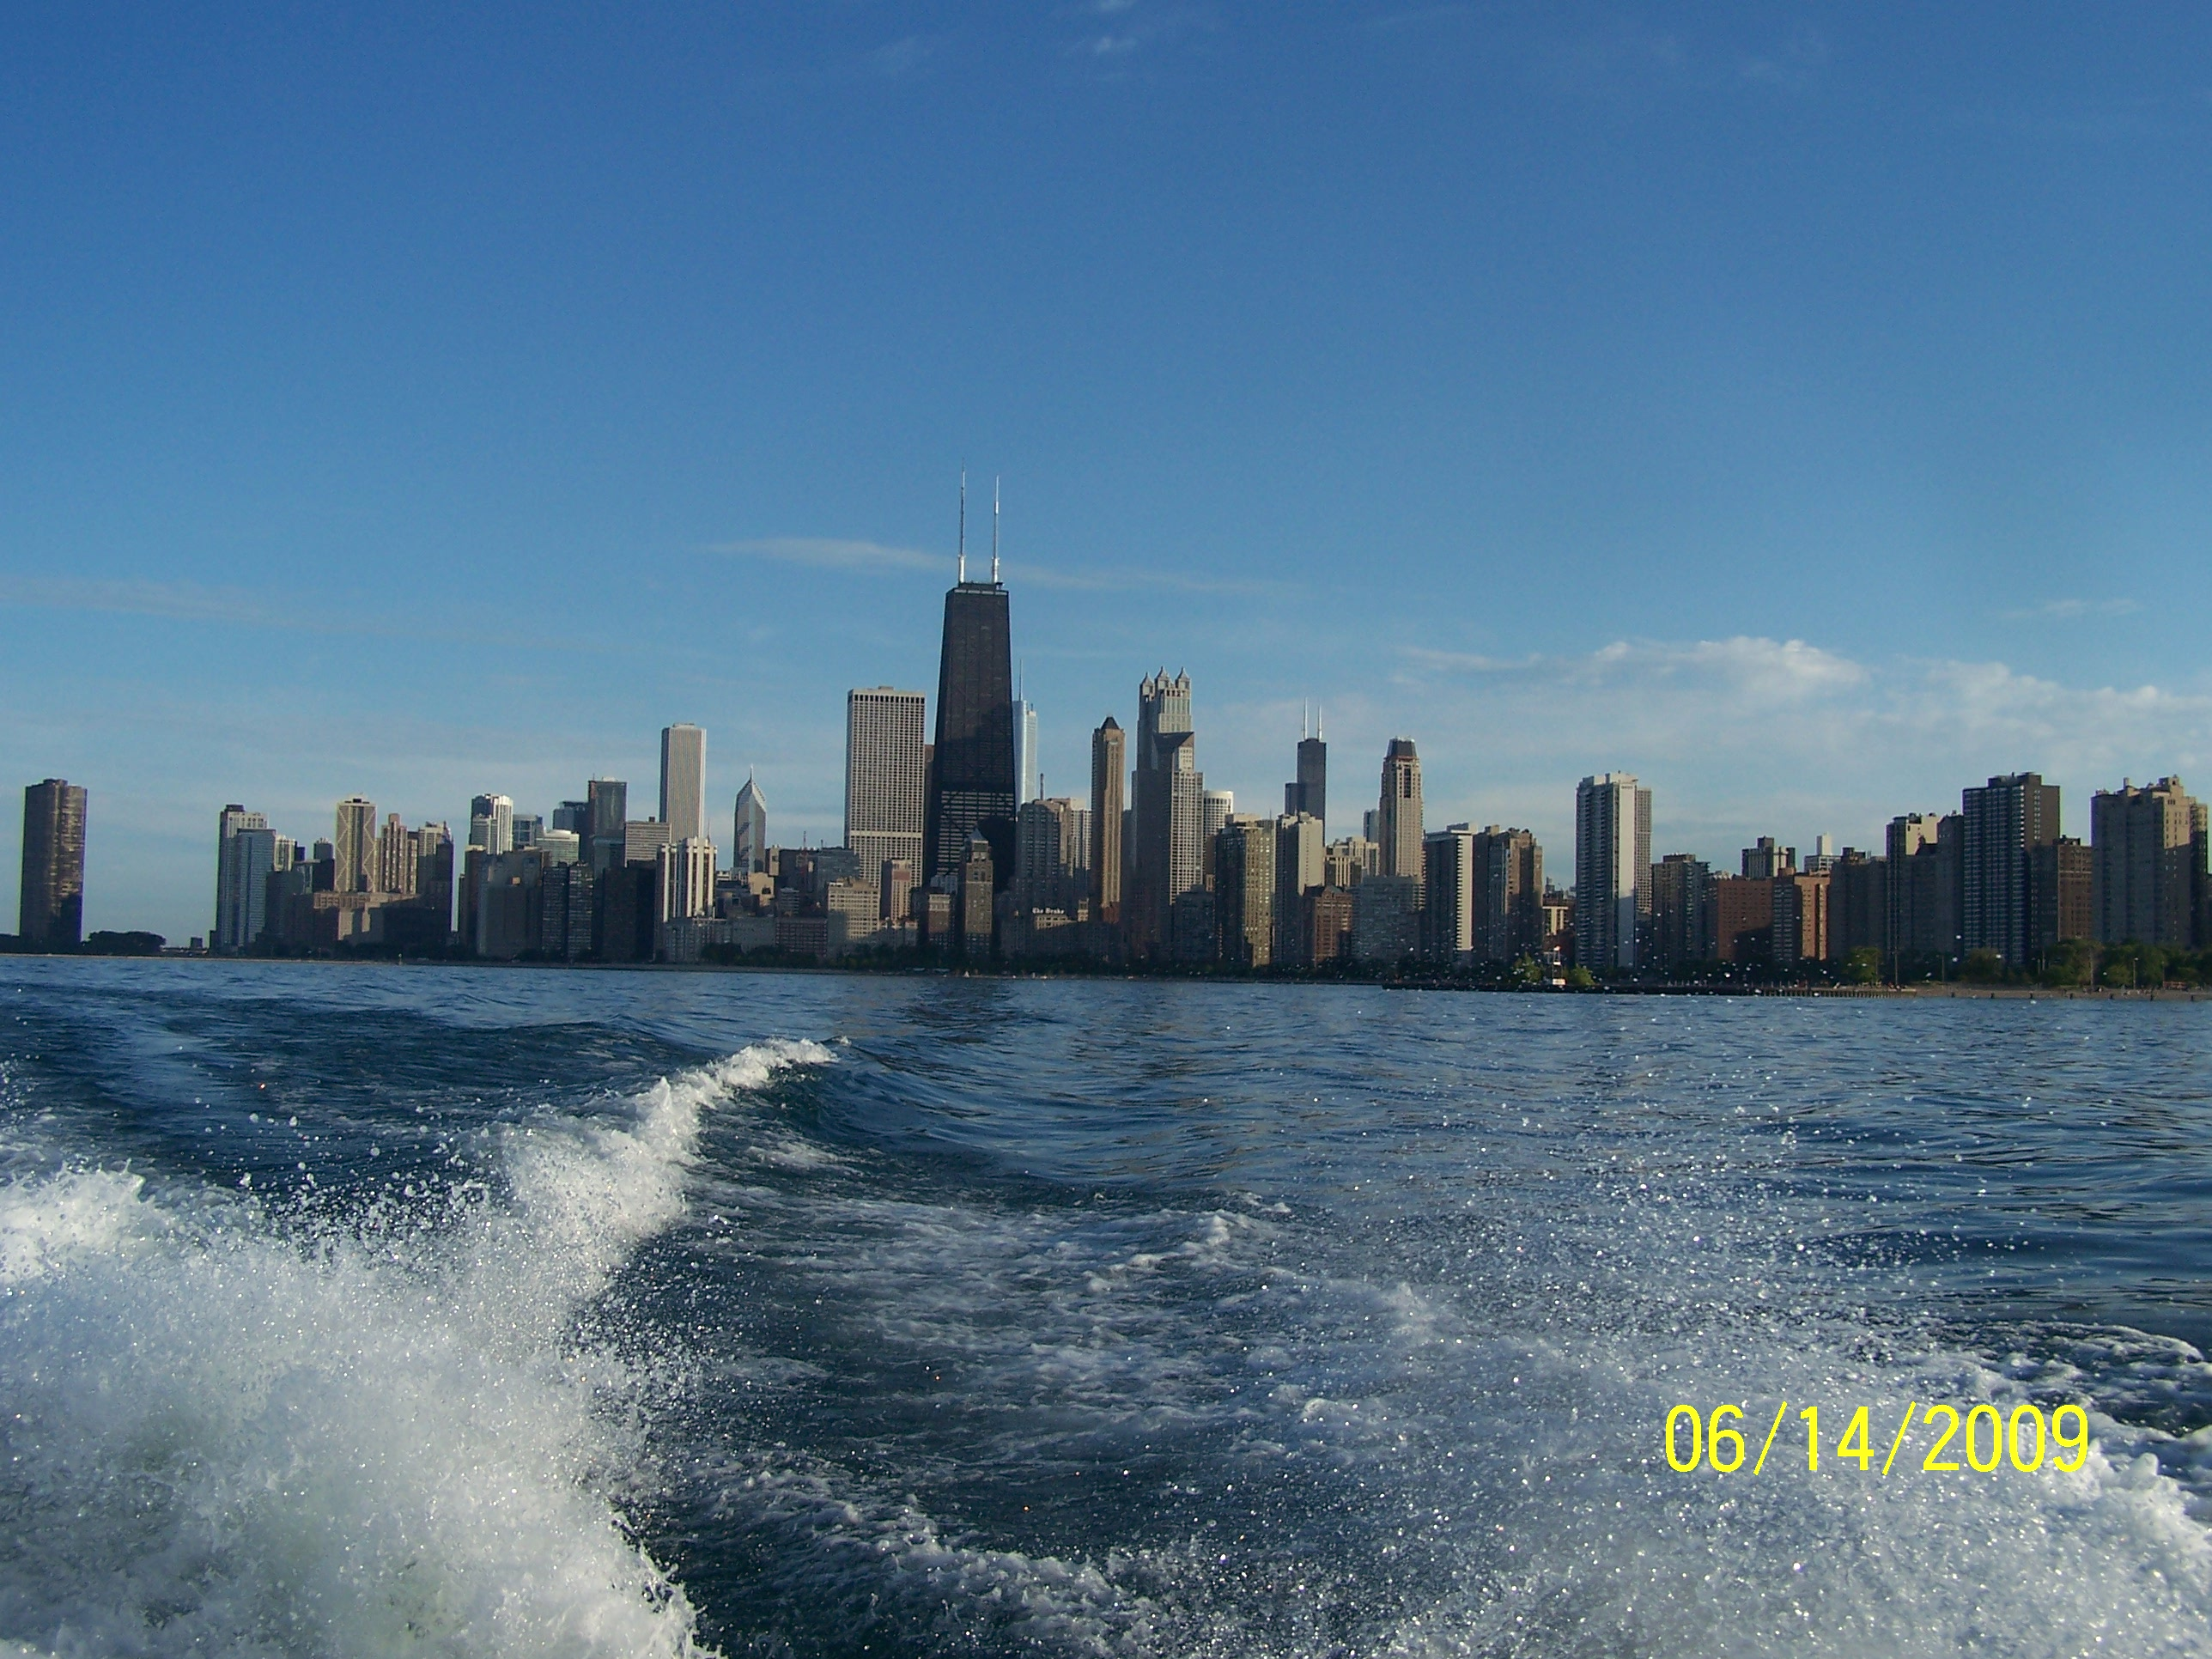 View from Lake Michigan